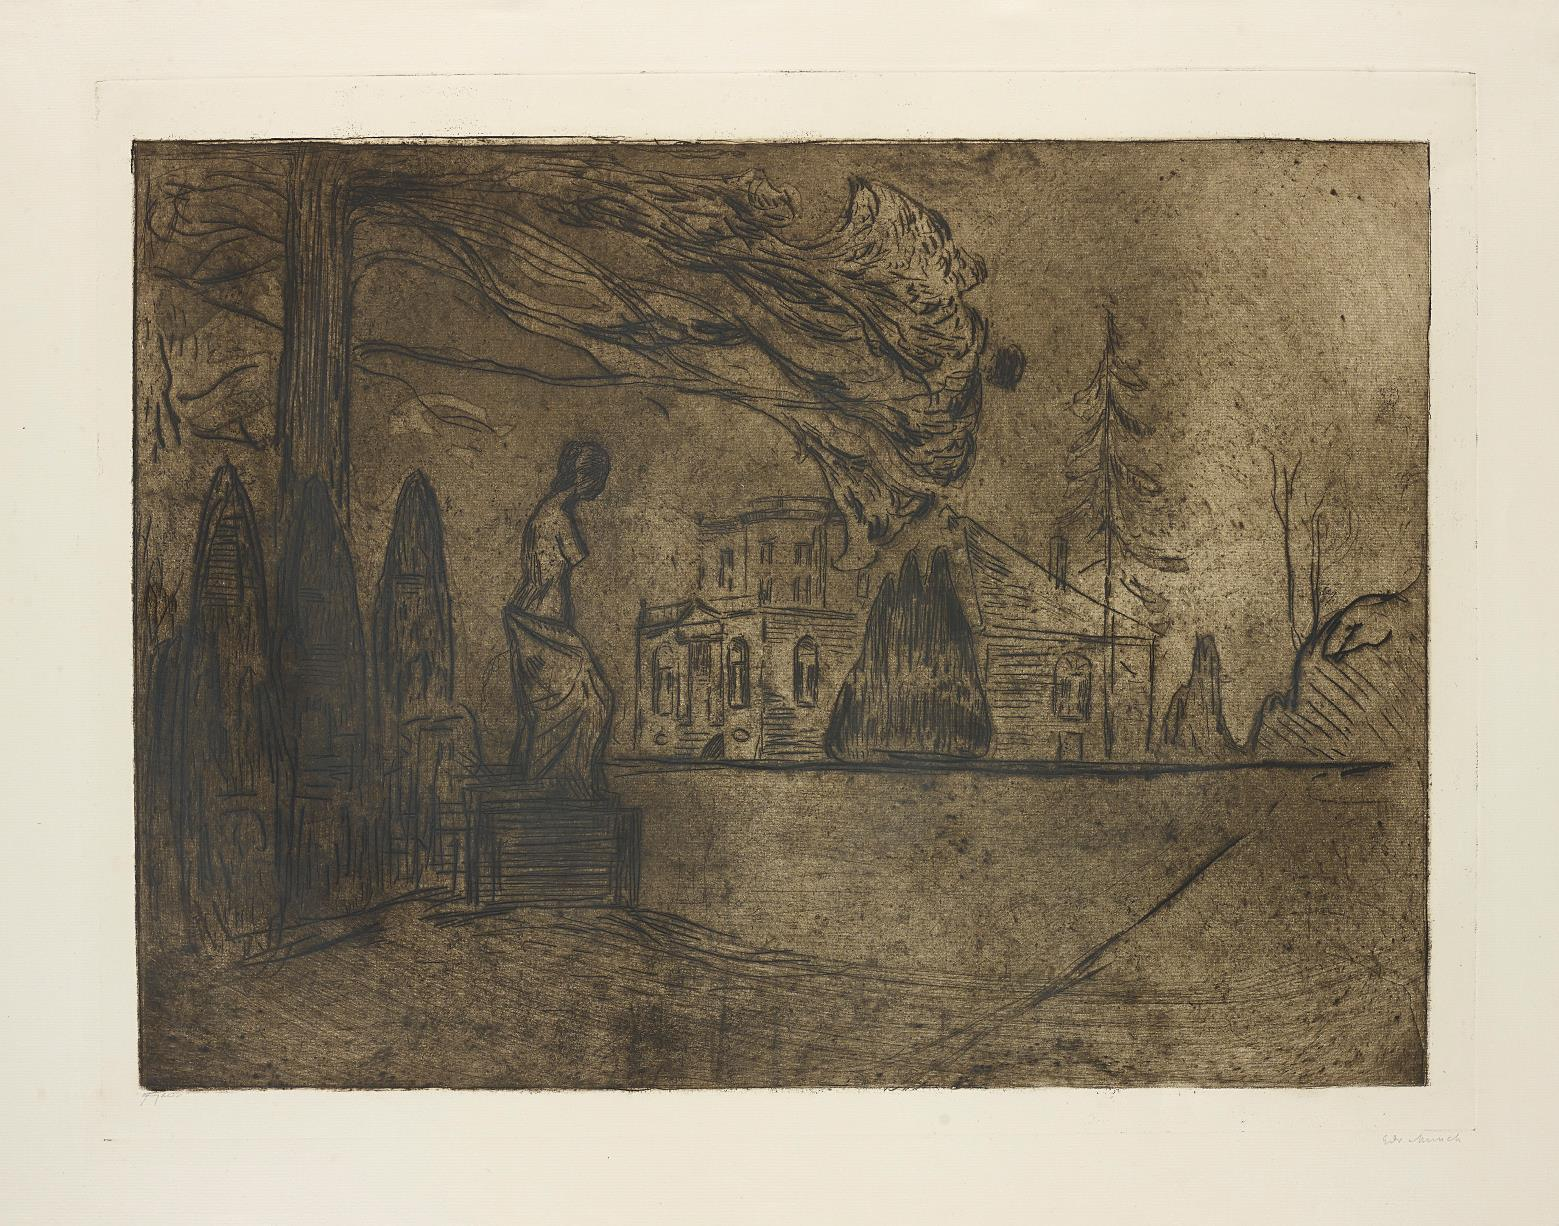 The Garden at Night, from Linde portfolio by Edvard Munch